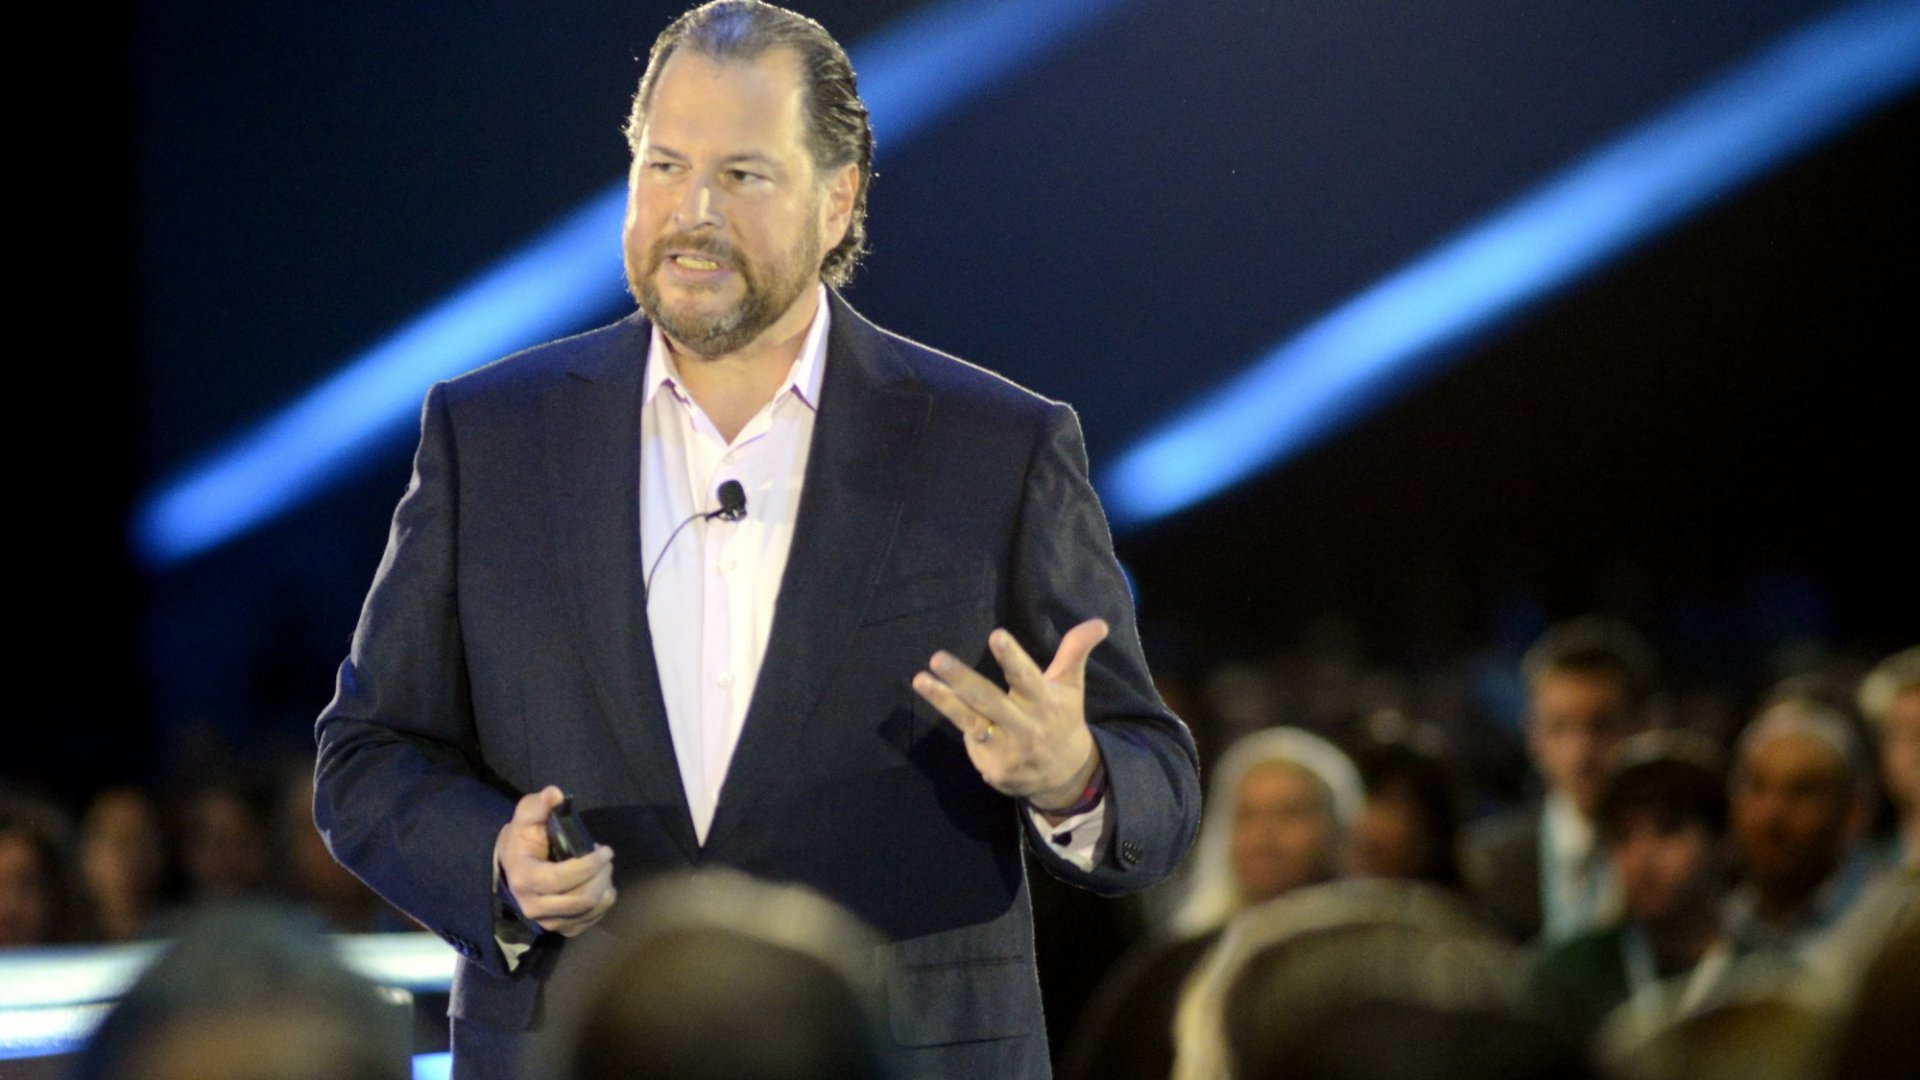 Marc Benioff: Diversity at Salesforce Is Improving But Not Ideal